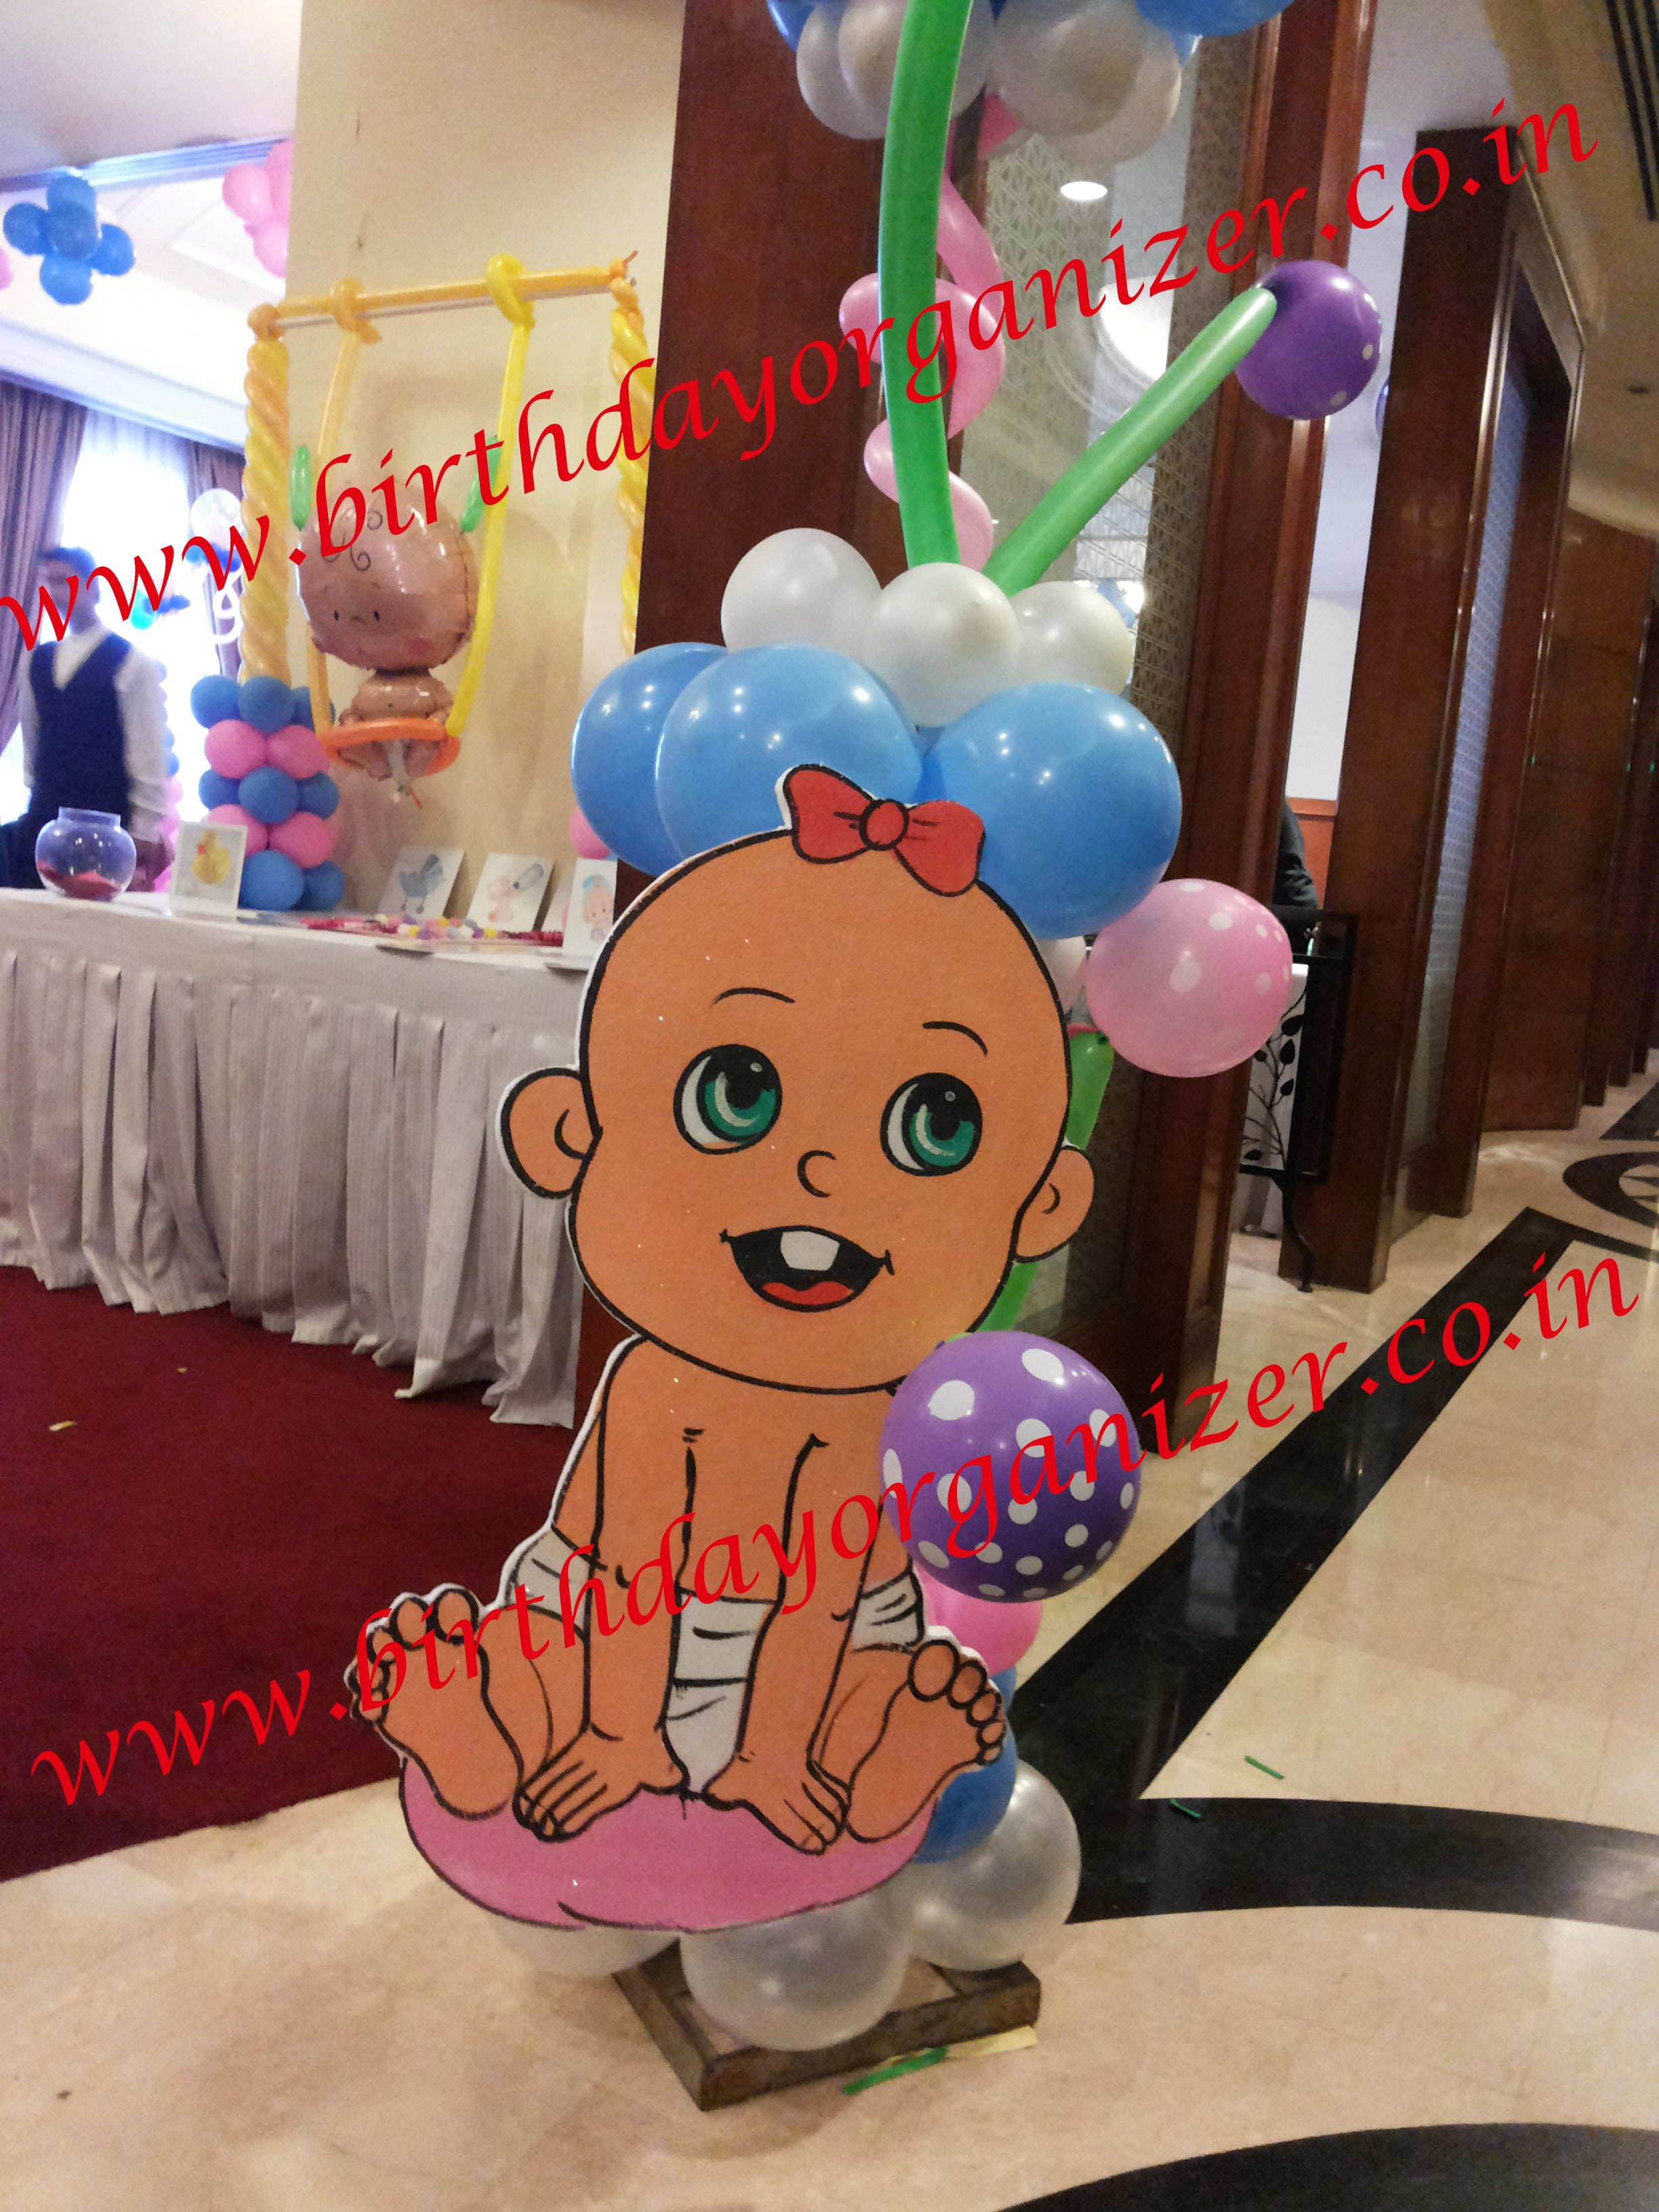 Baby shower cutout decoration in noida, Baby shower cutout decoration in delhi, Baby shower cutout decoration in gurgaon ncr